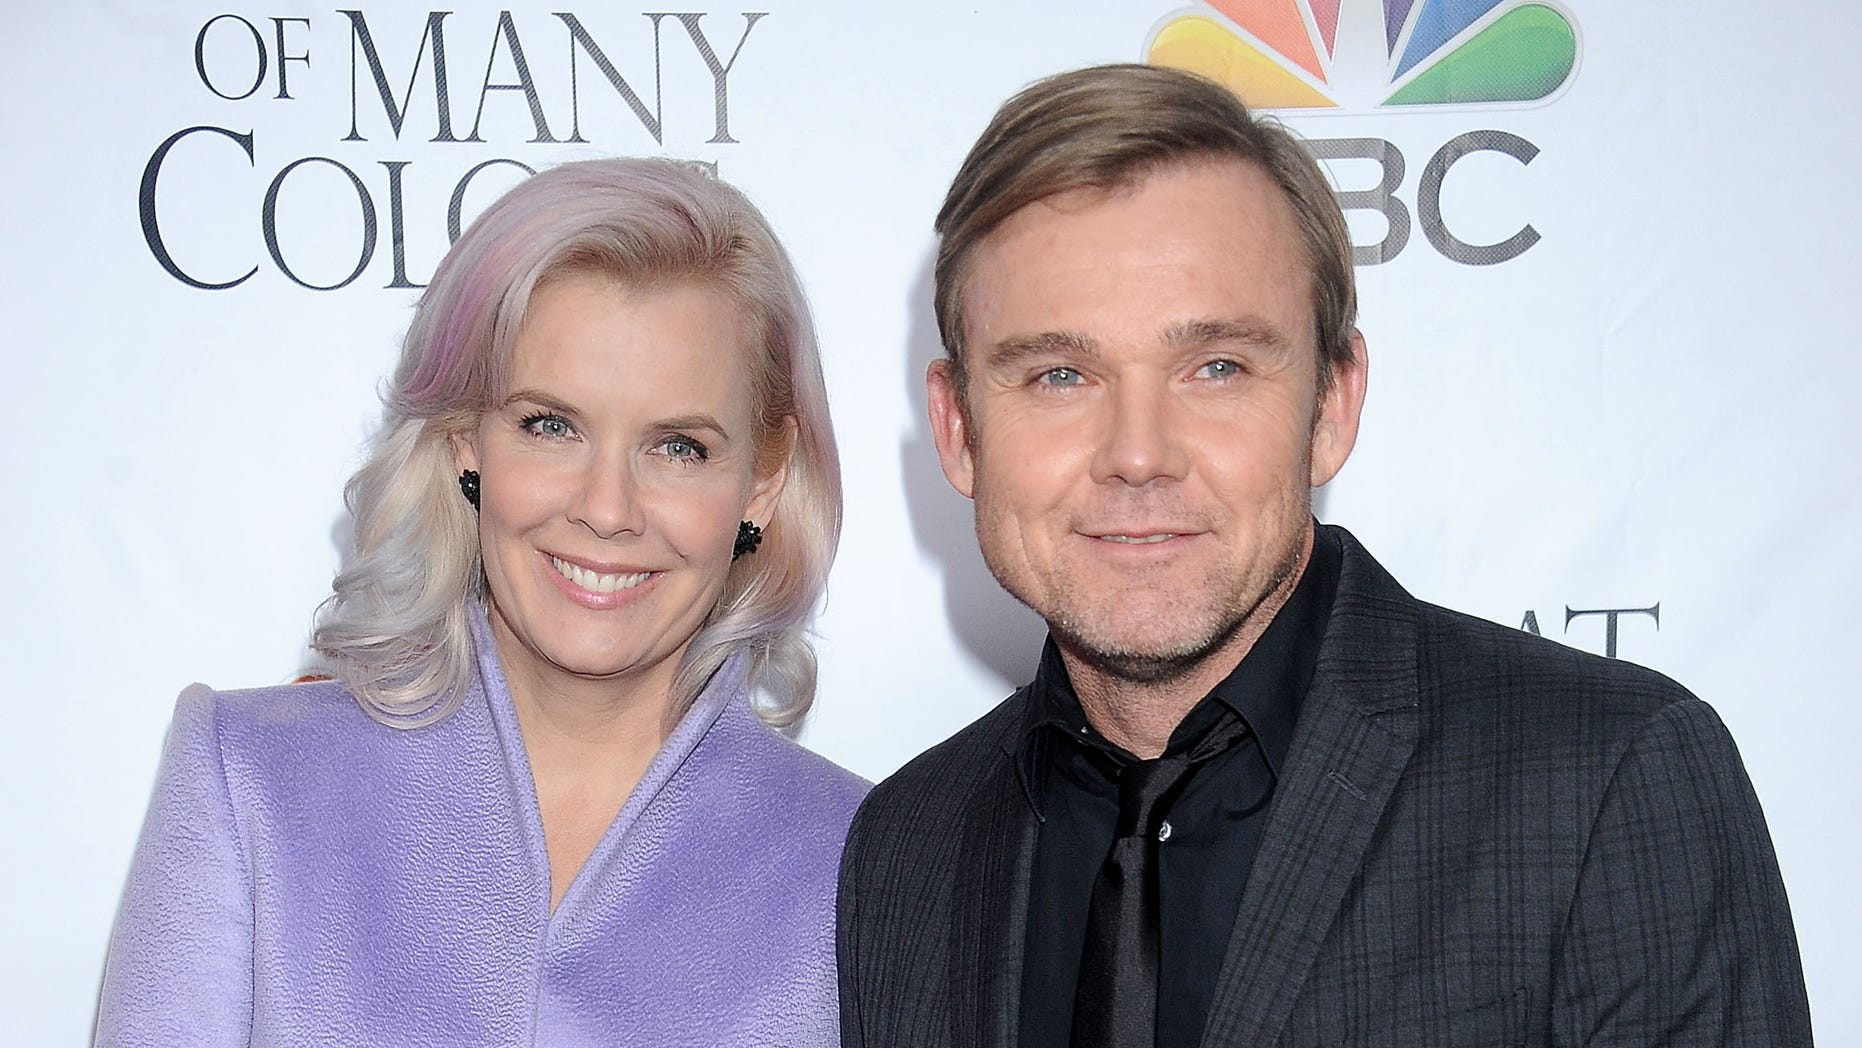 """HOLLYWOOD, CA - DECEMBER 02: Actor Ricky Schroder and wife Andrea Bernard Schroder arrive at the premiere of Warner Bros. Television's """"Dolly Parton's Coat Of Many Colors"""" at the Egyptian Theatre on December 2, 2015 in Hollywood, California.  (Photo by Gregg DeGuire/WireImage)"""